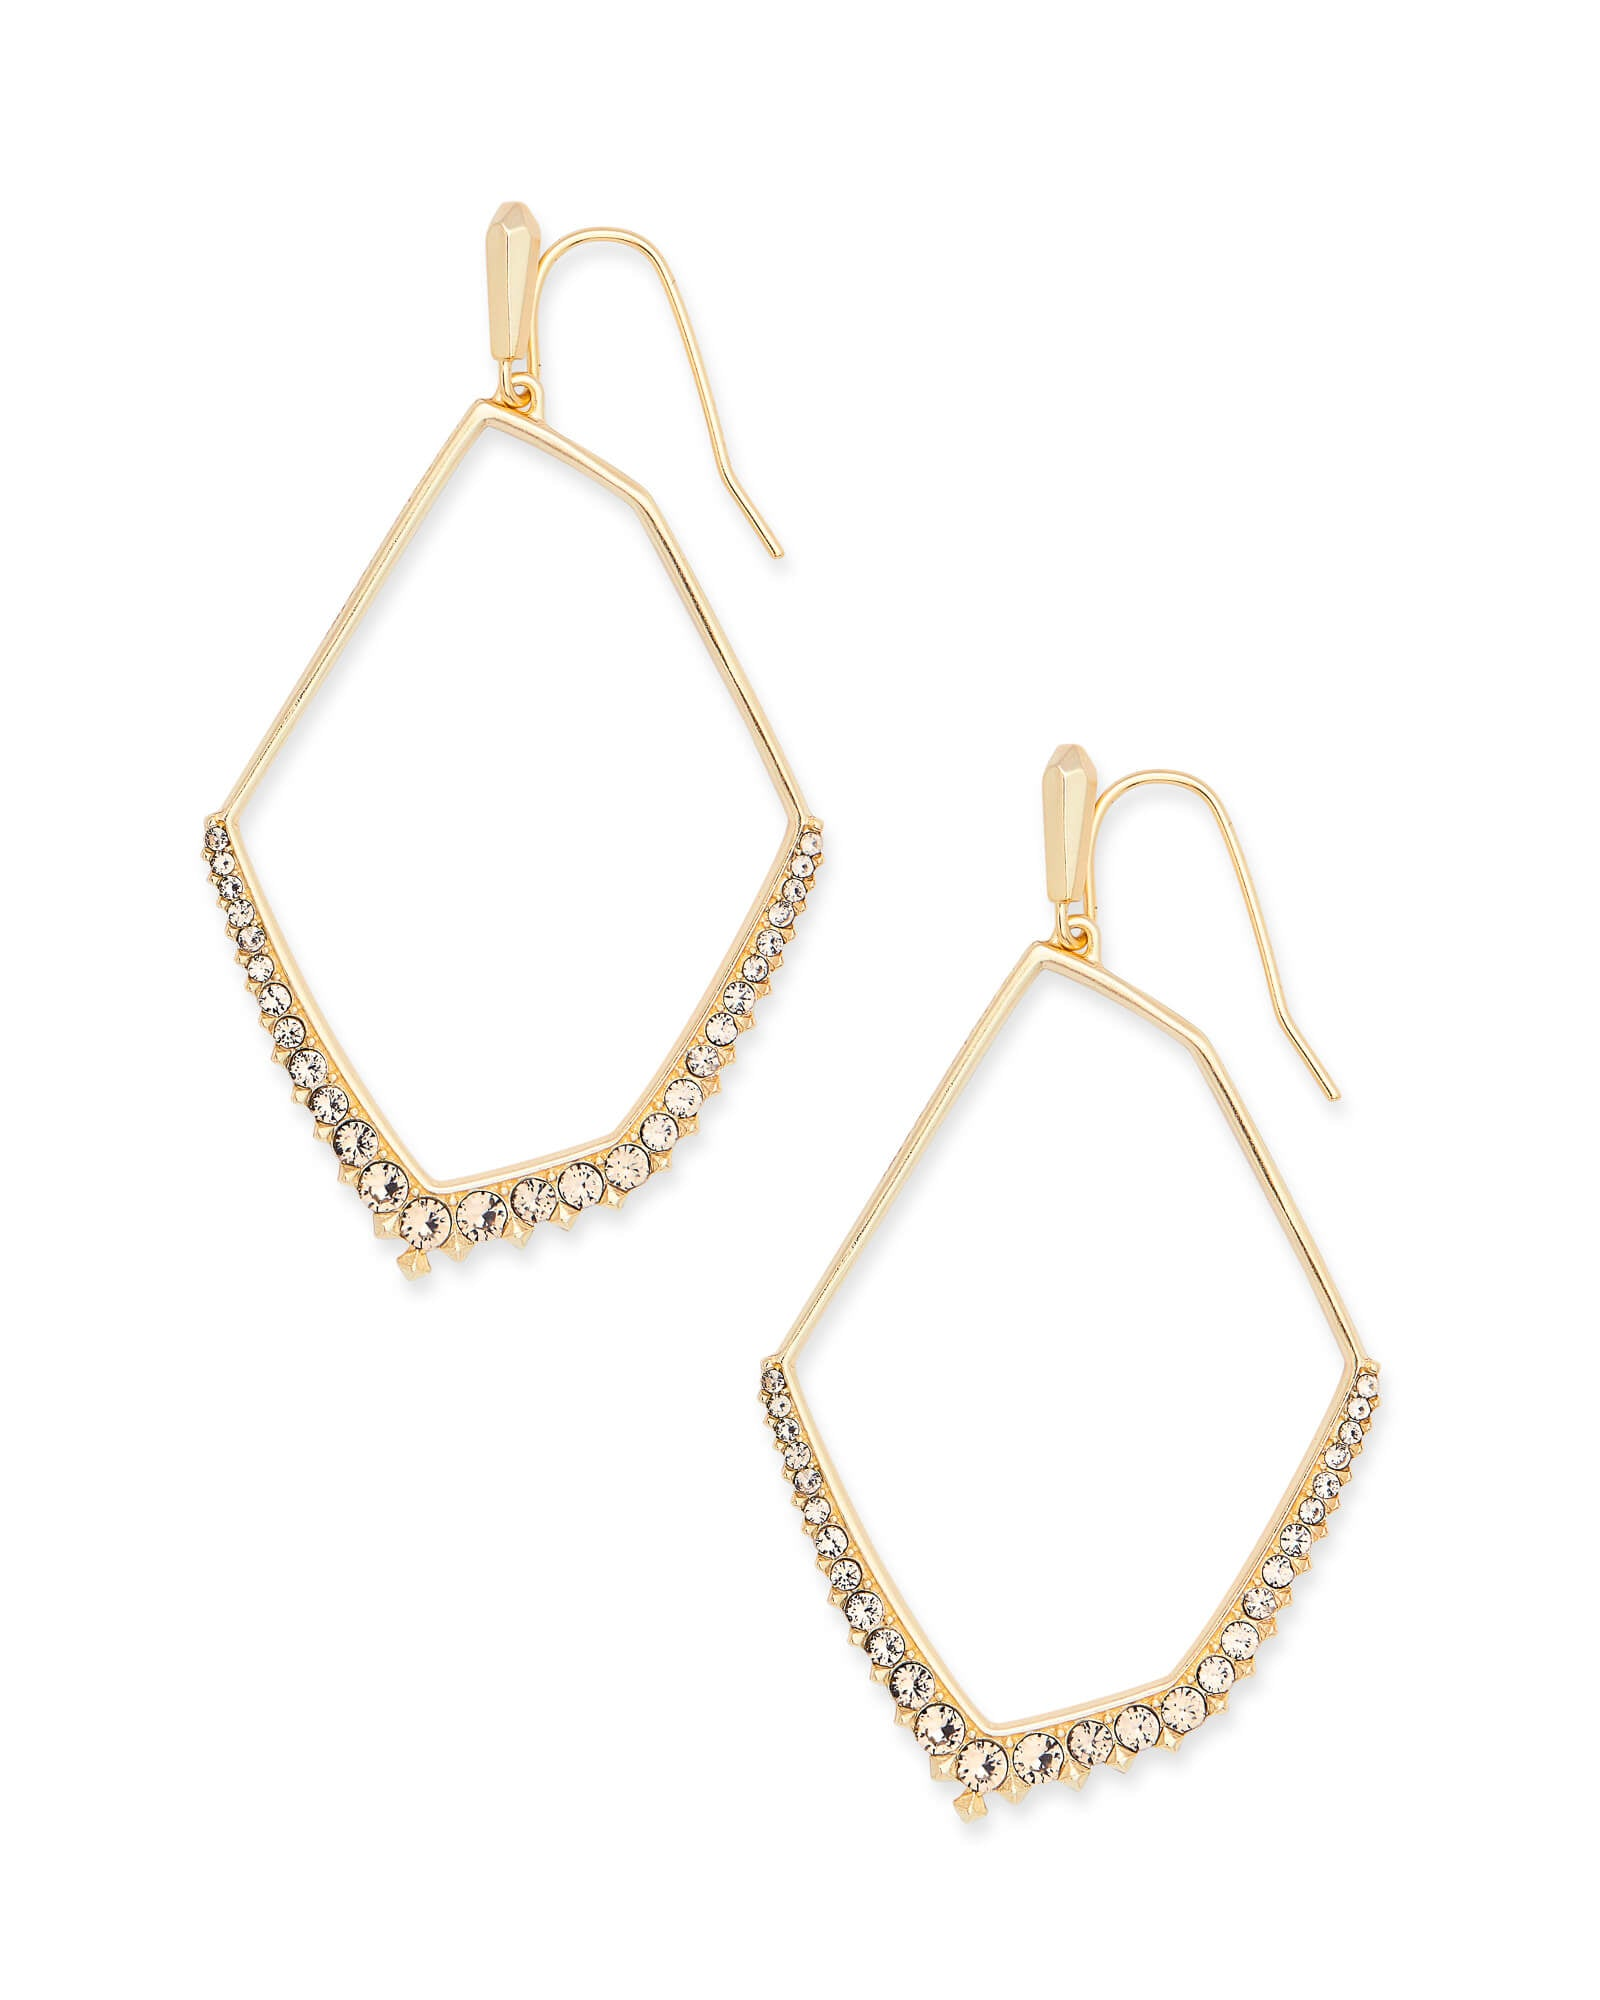 Nell Gold Statement Earrings in Smoky Crystal